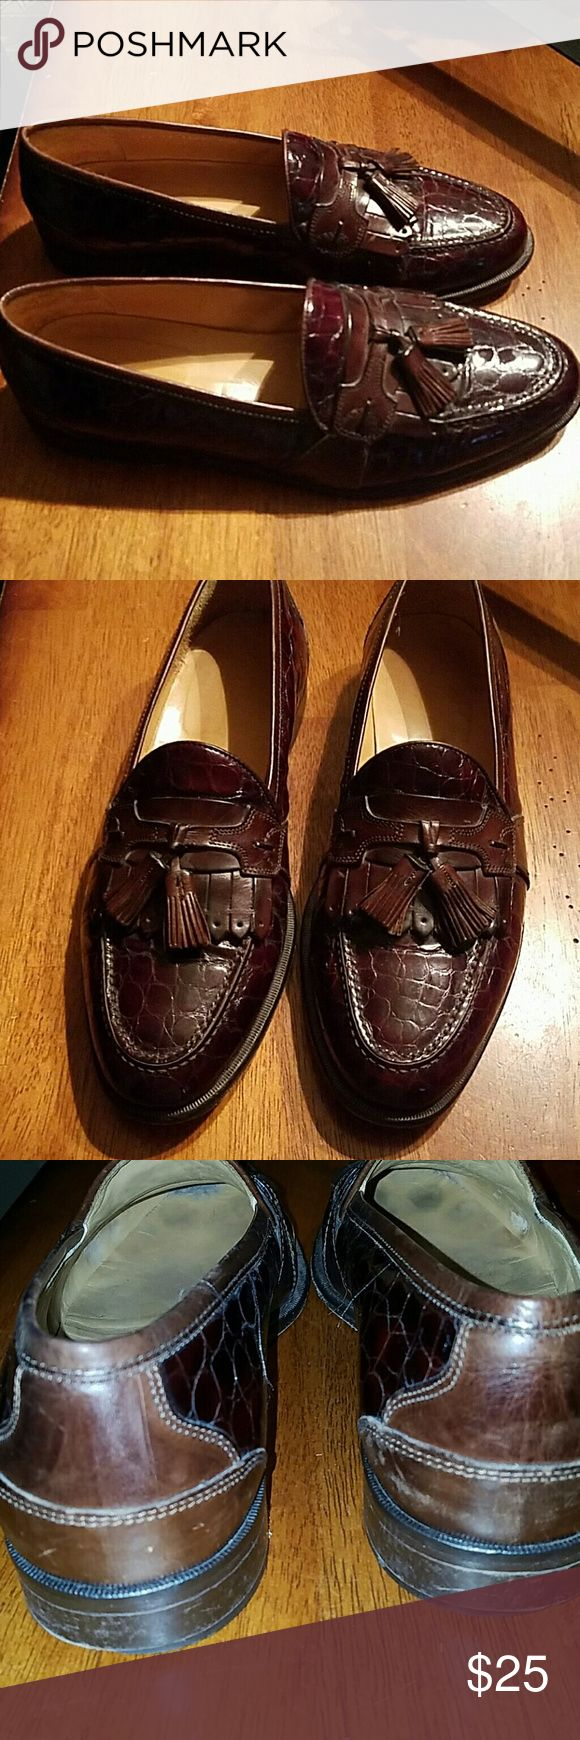 JOHNSON AND MURPHY LOAFERS SIZE 10 ITALIAN Johnston and Murphy Italian made men's leather loafers with tassel excellent condition minimal wear Johnston & Murphy men's alligator skin loafers with tassel excellent condition minimal wear. Size 10 Johnson and Murphy  Shoes Loafers & Slip-Ons